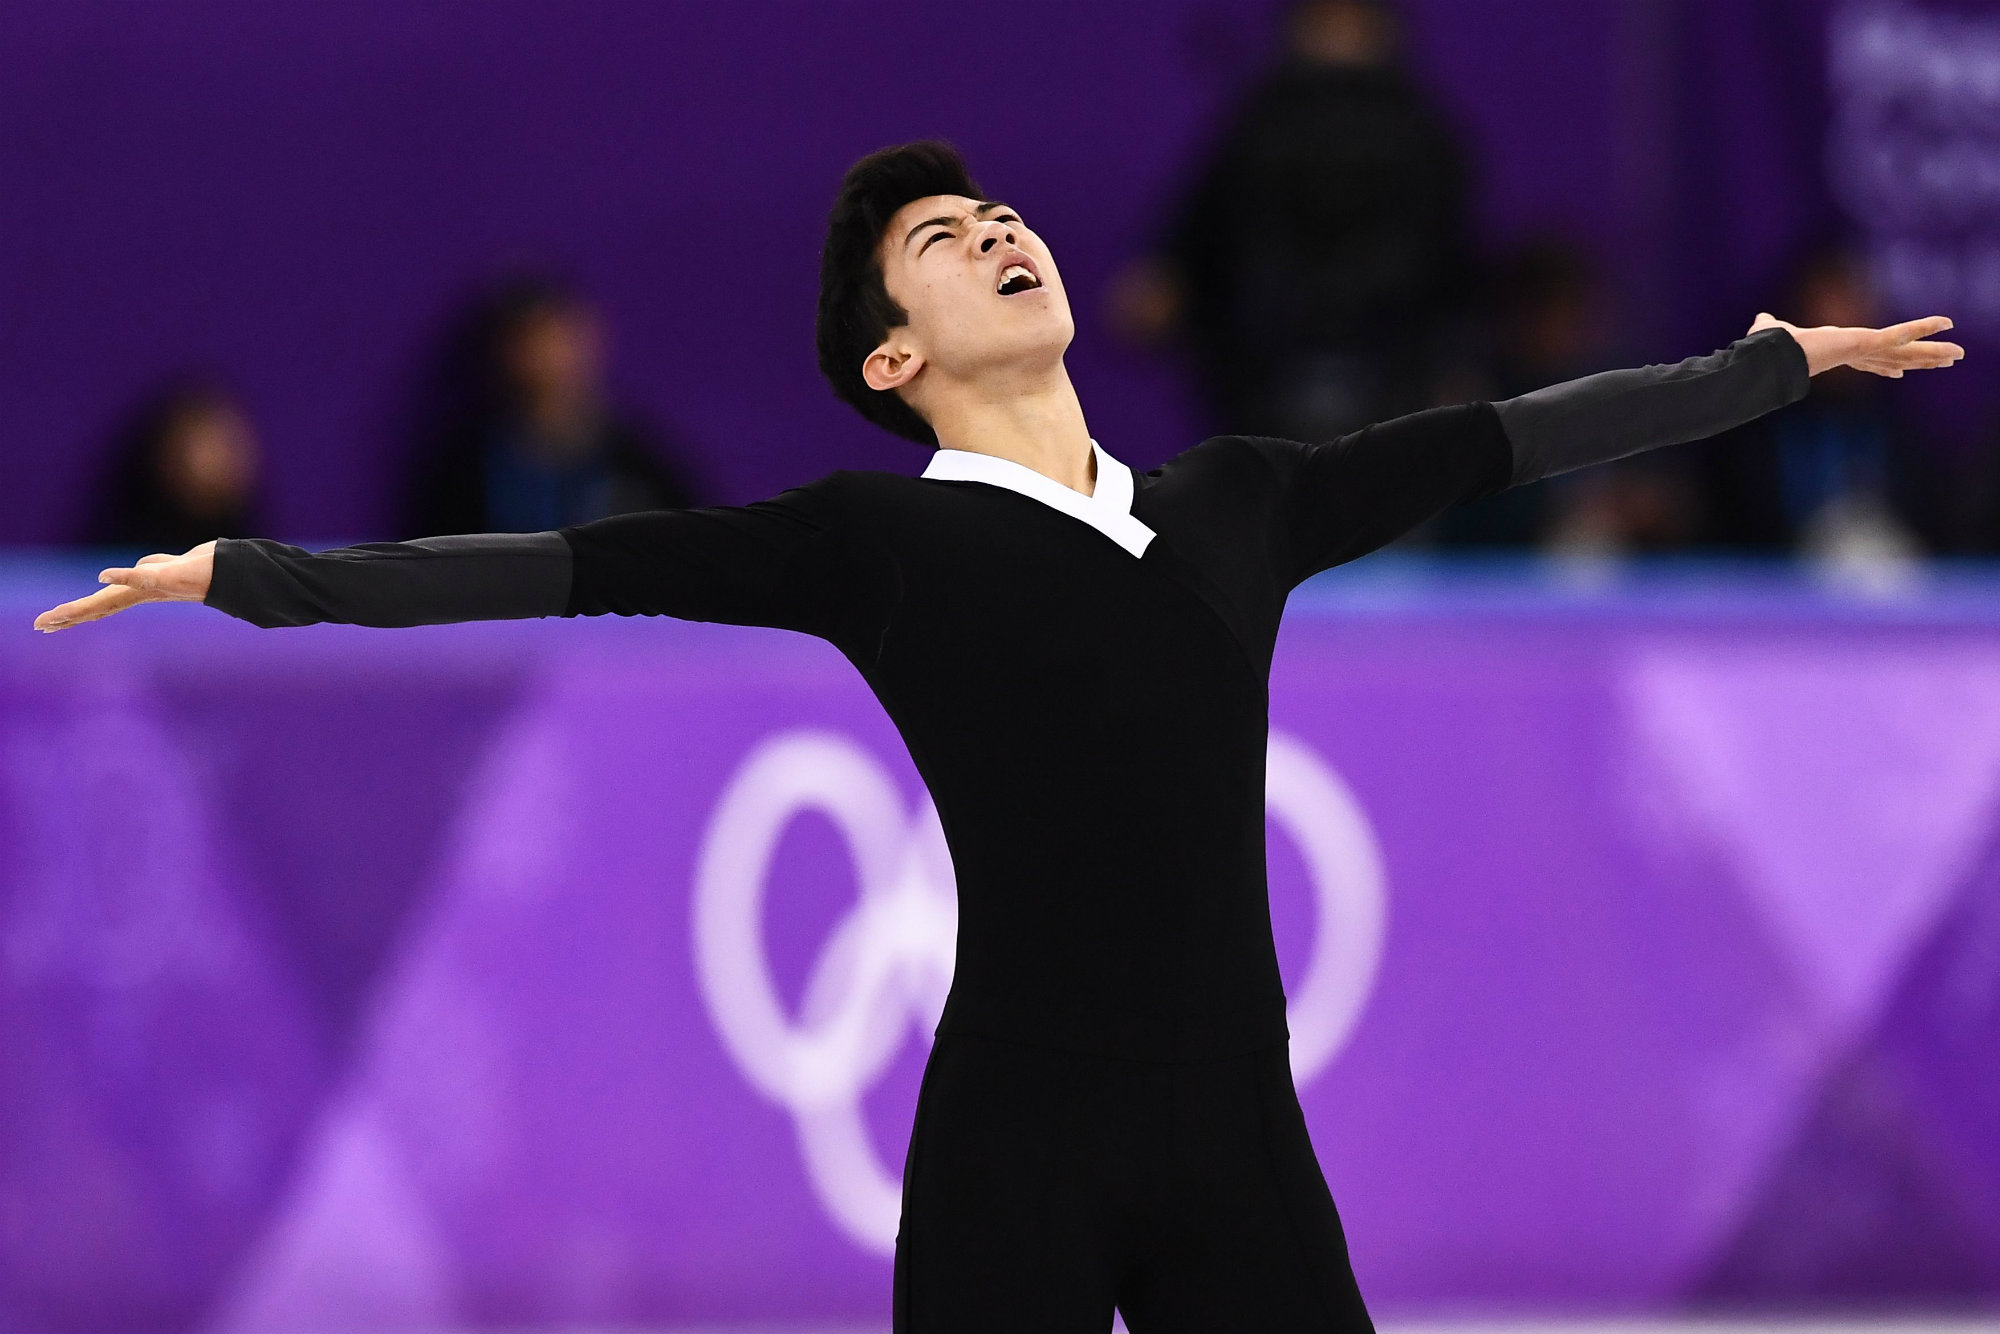 Nathan Chen - Lead